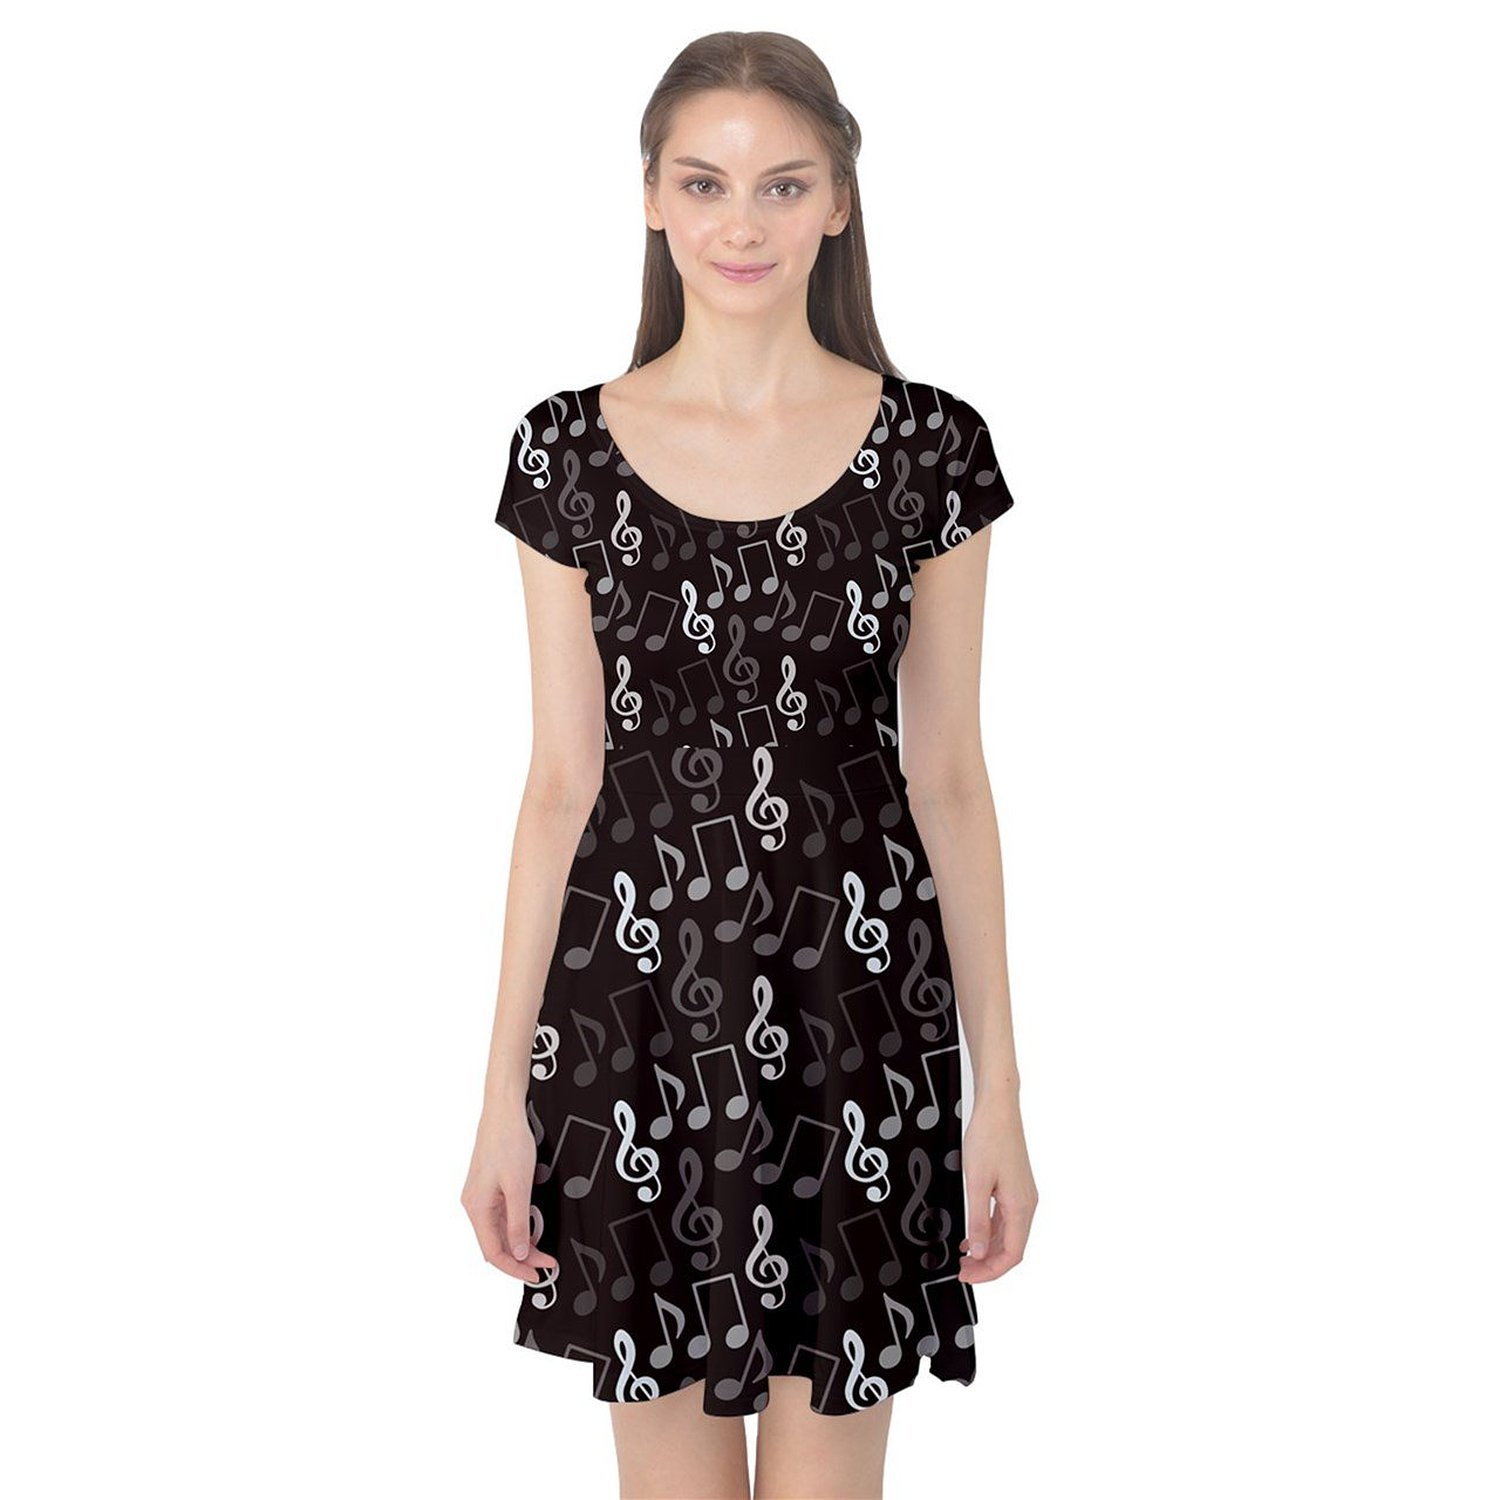 CowCow Womens Black Pattern Music Notes Treble Clef Cap Sleeve Dress at Amazon Women's Clothing store